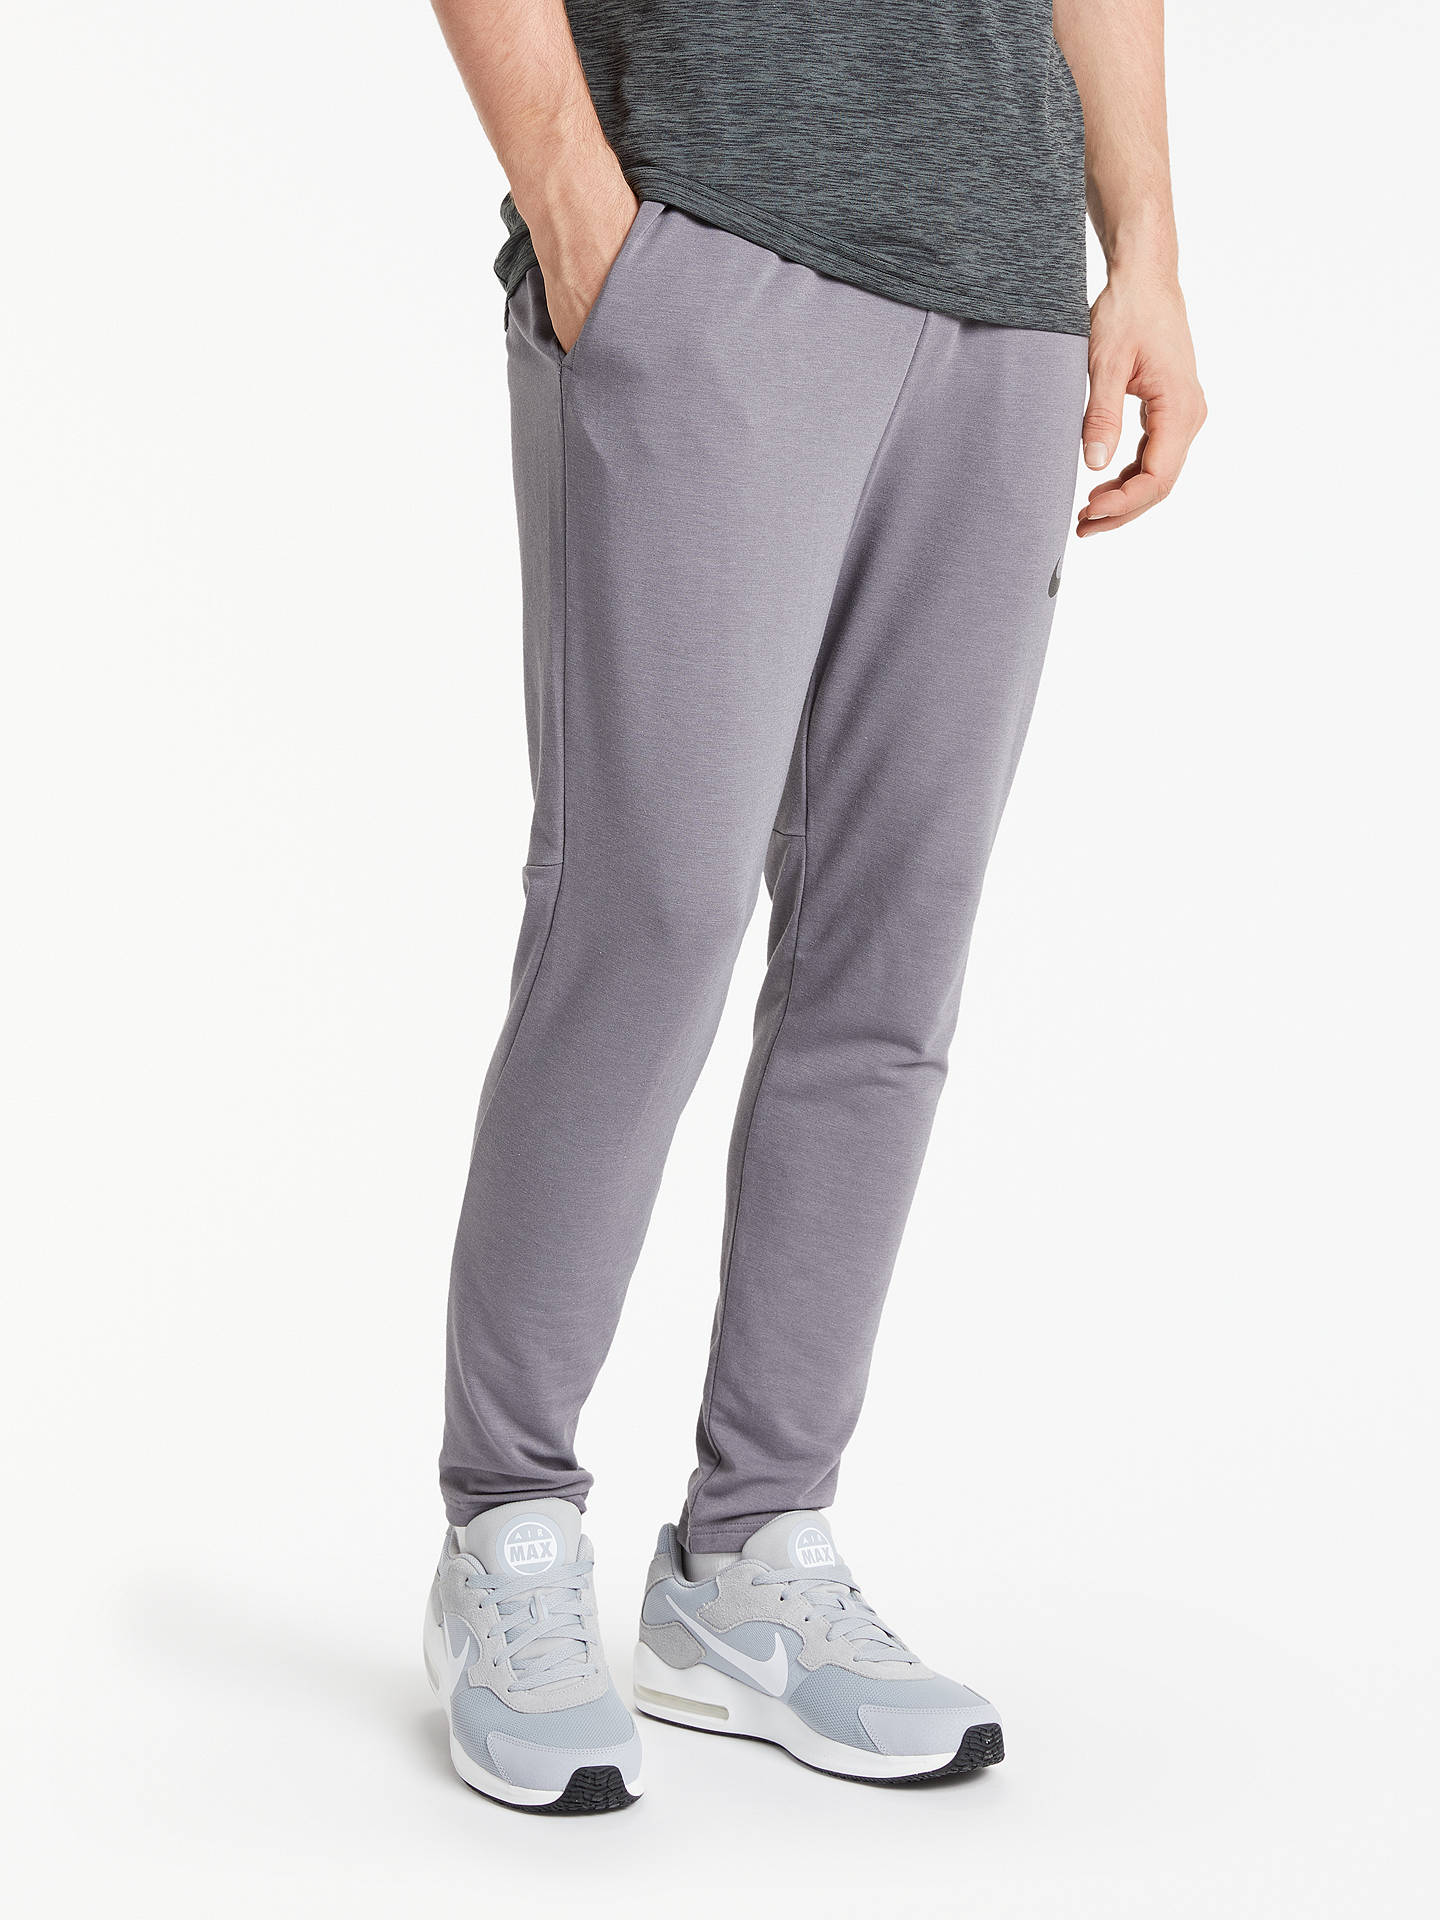 da51976a4318 Nike Dry Training Tracksuit Bottoms at John Lewis   Partners